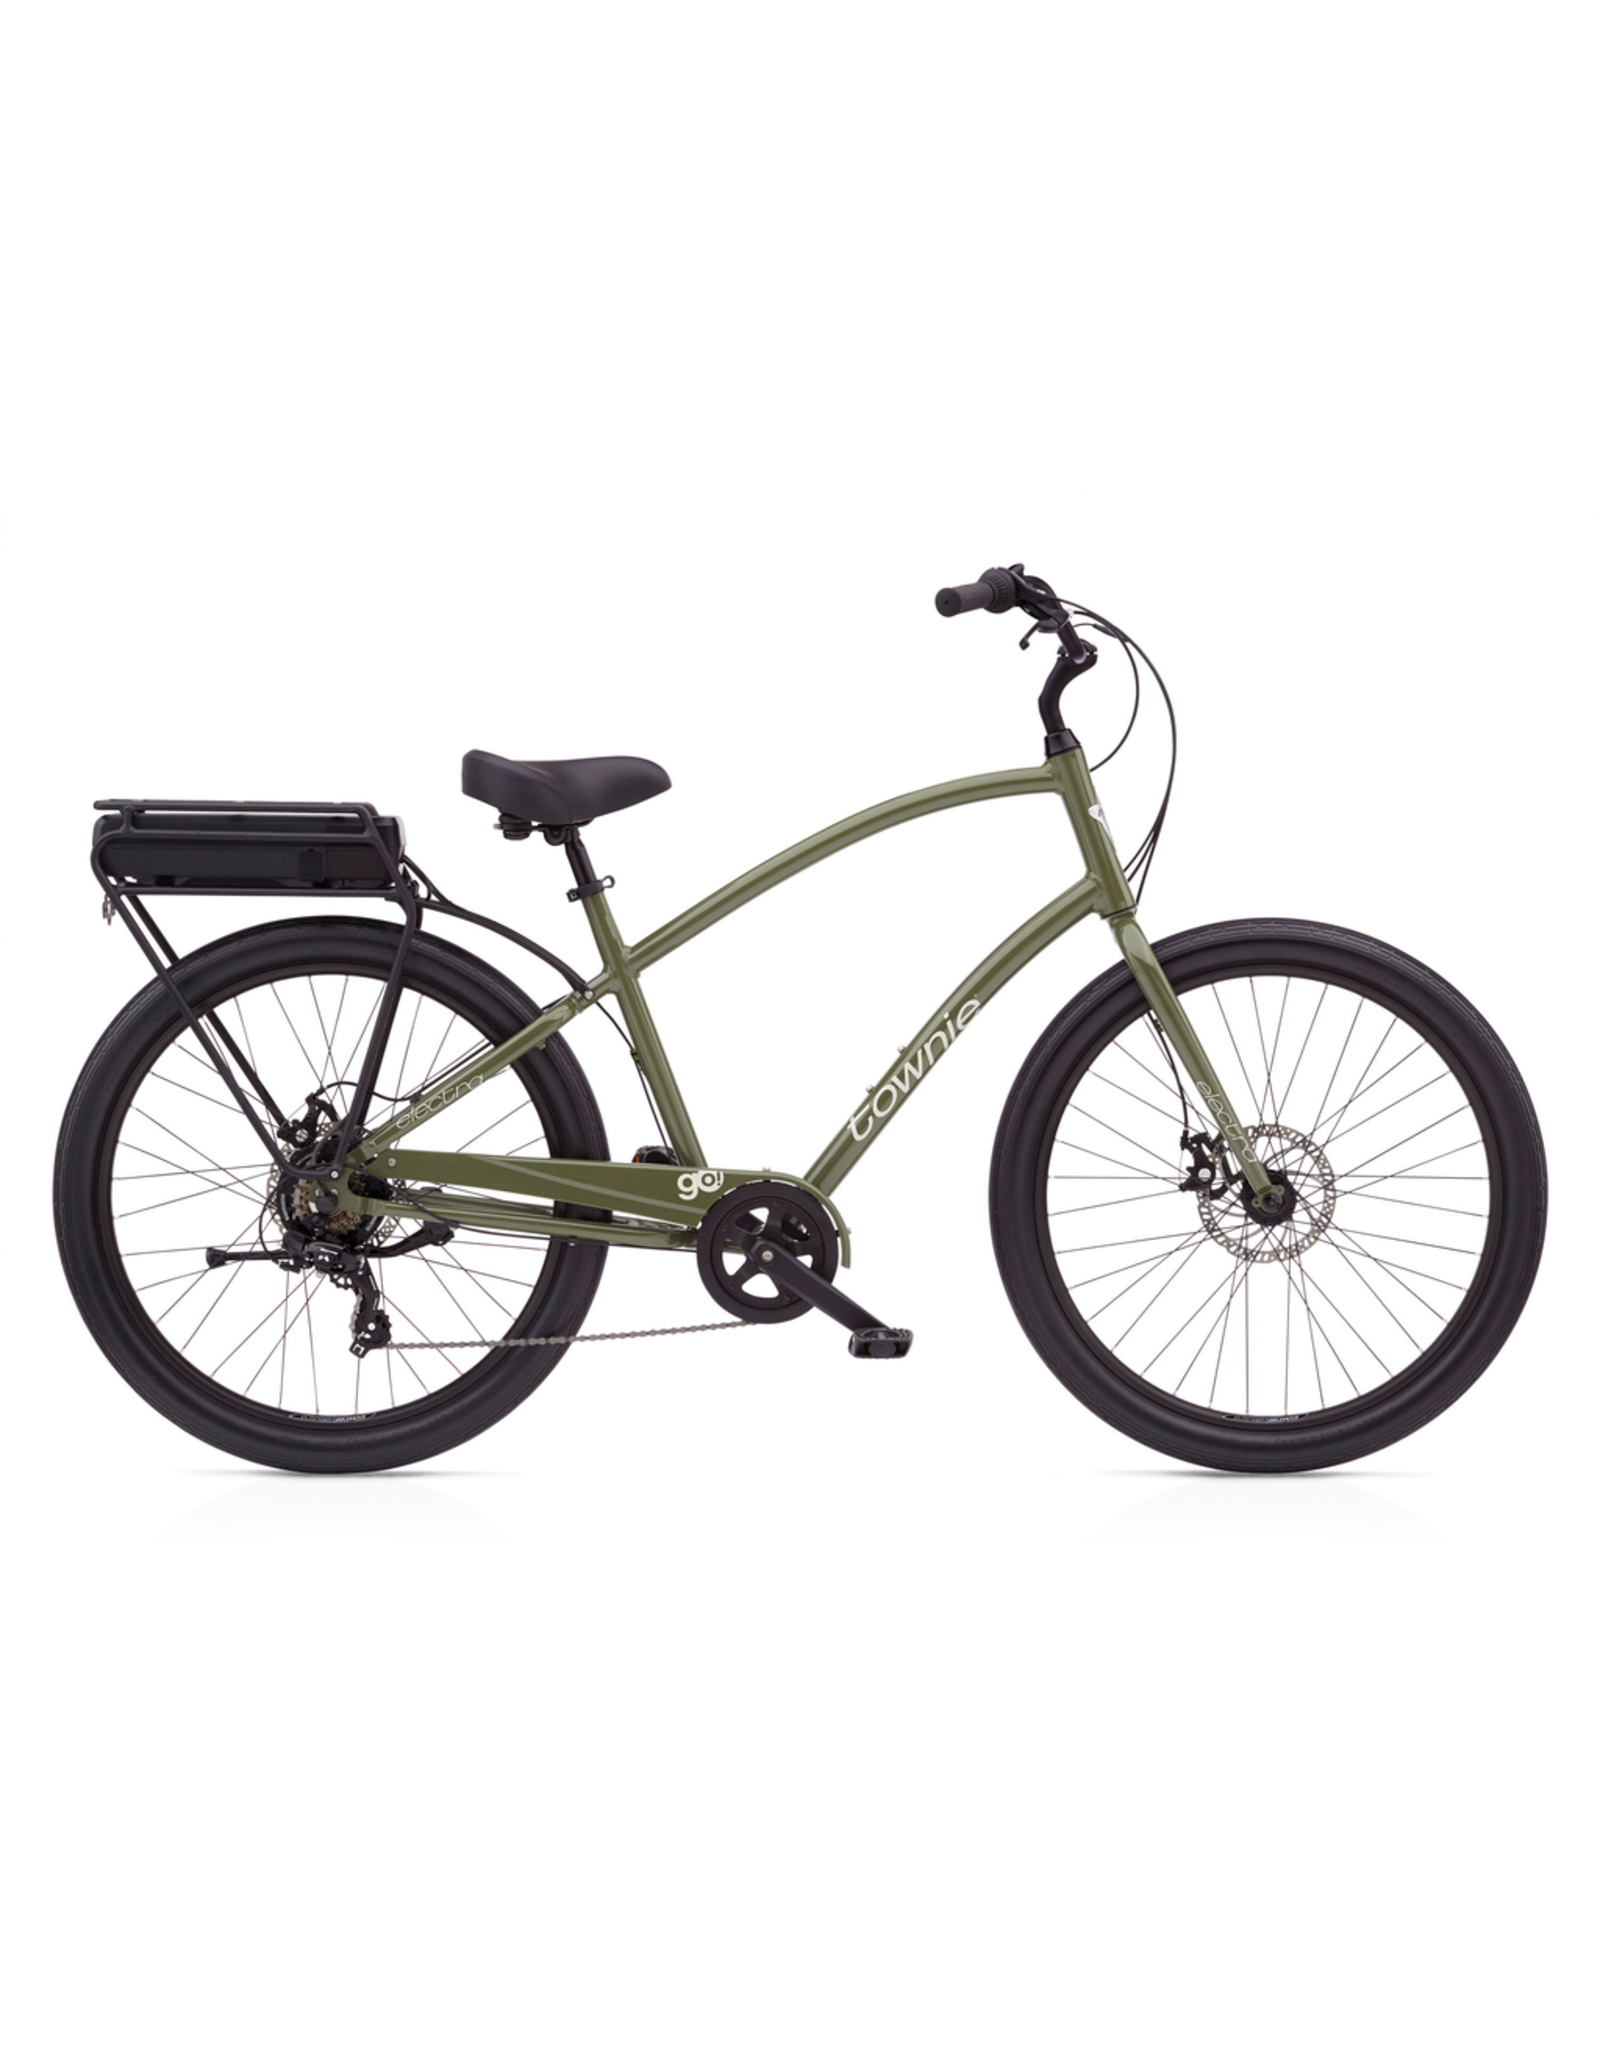 Townie Electra Townie Go! 7D Step-Over